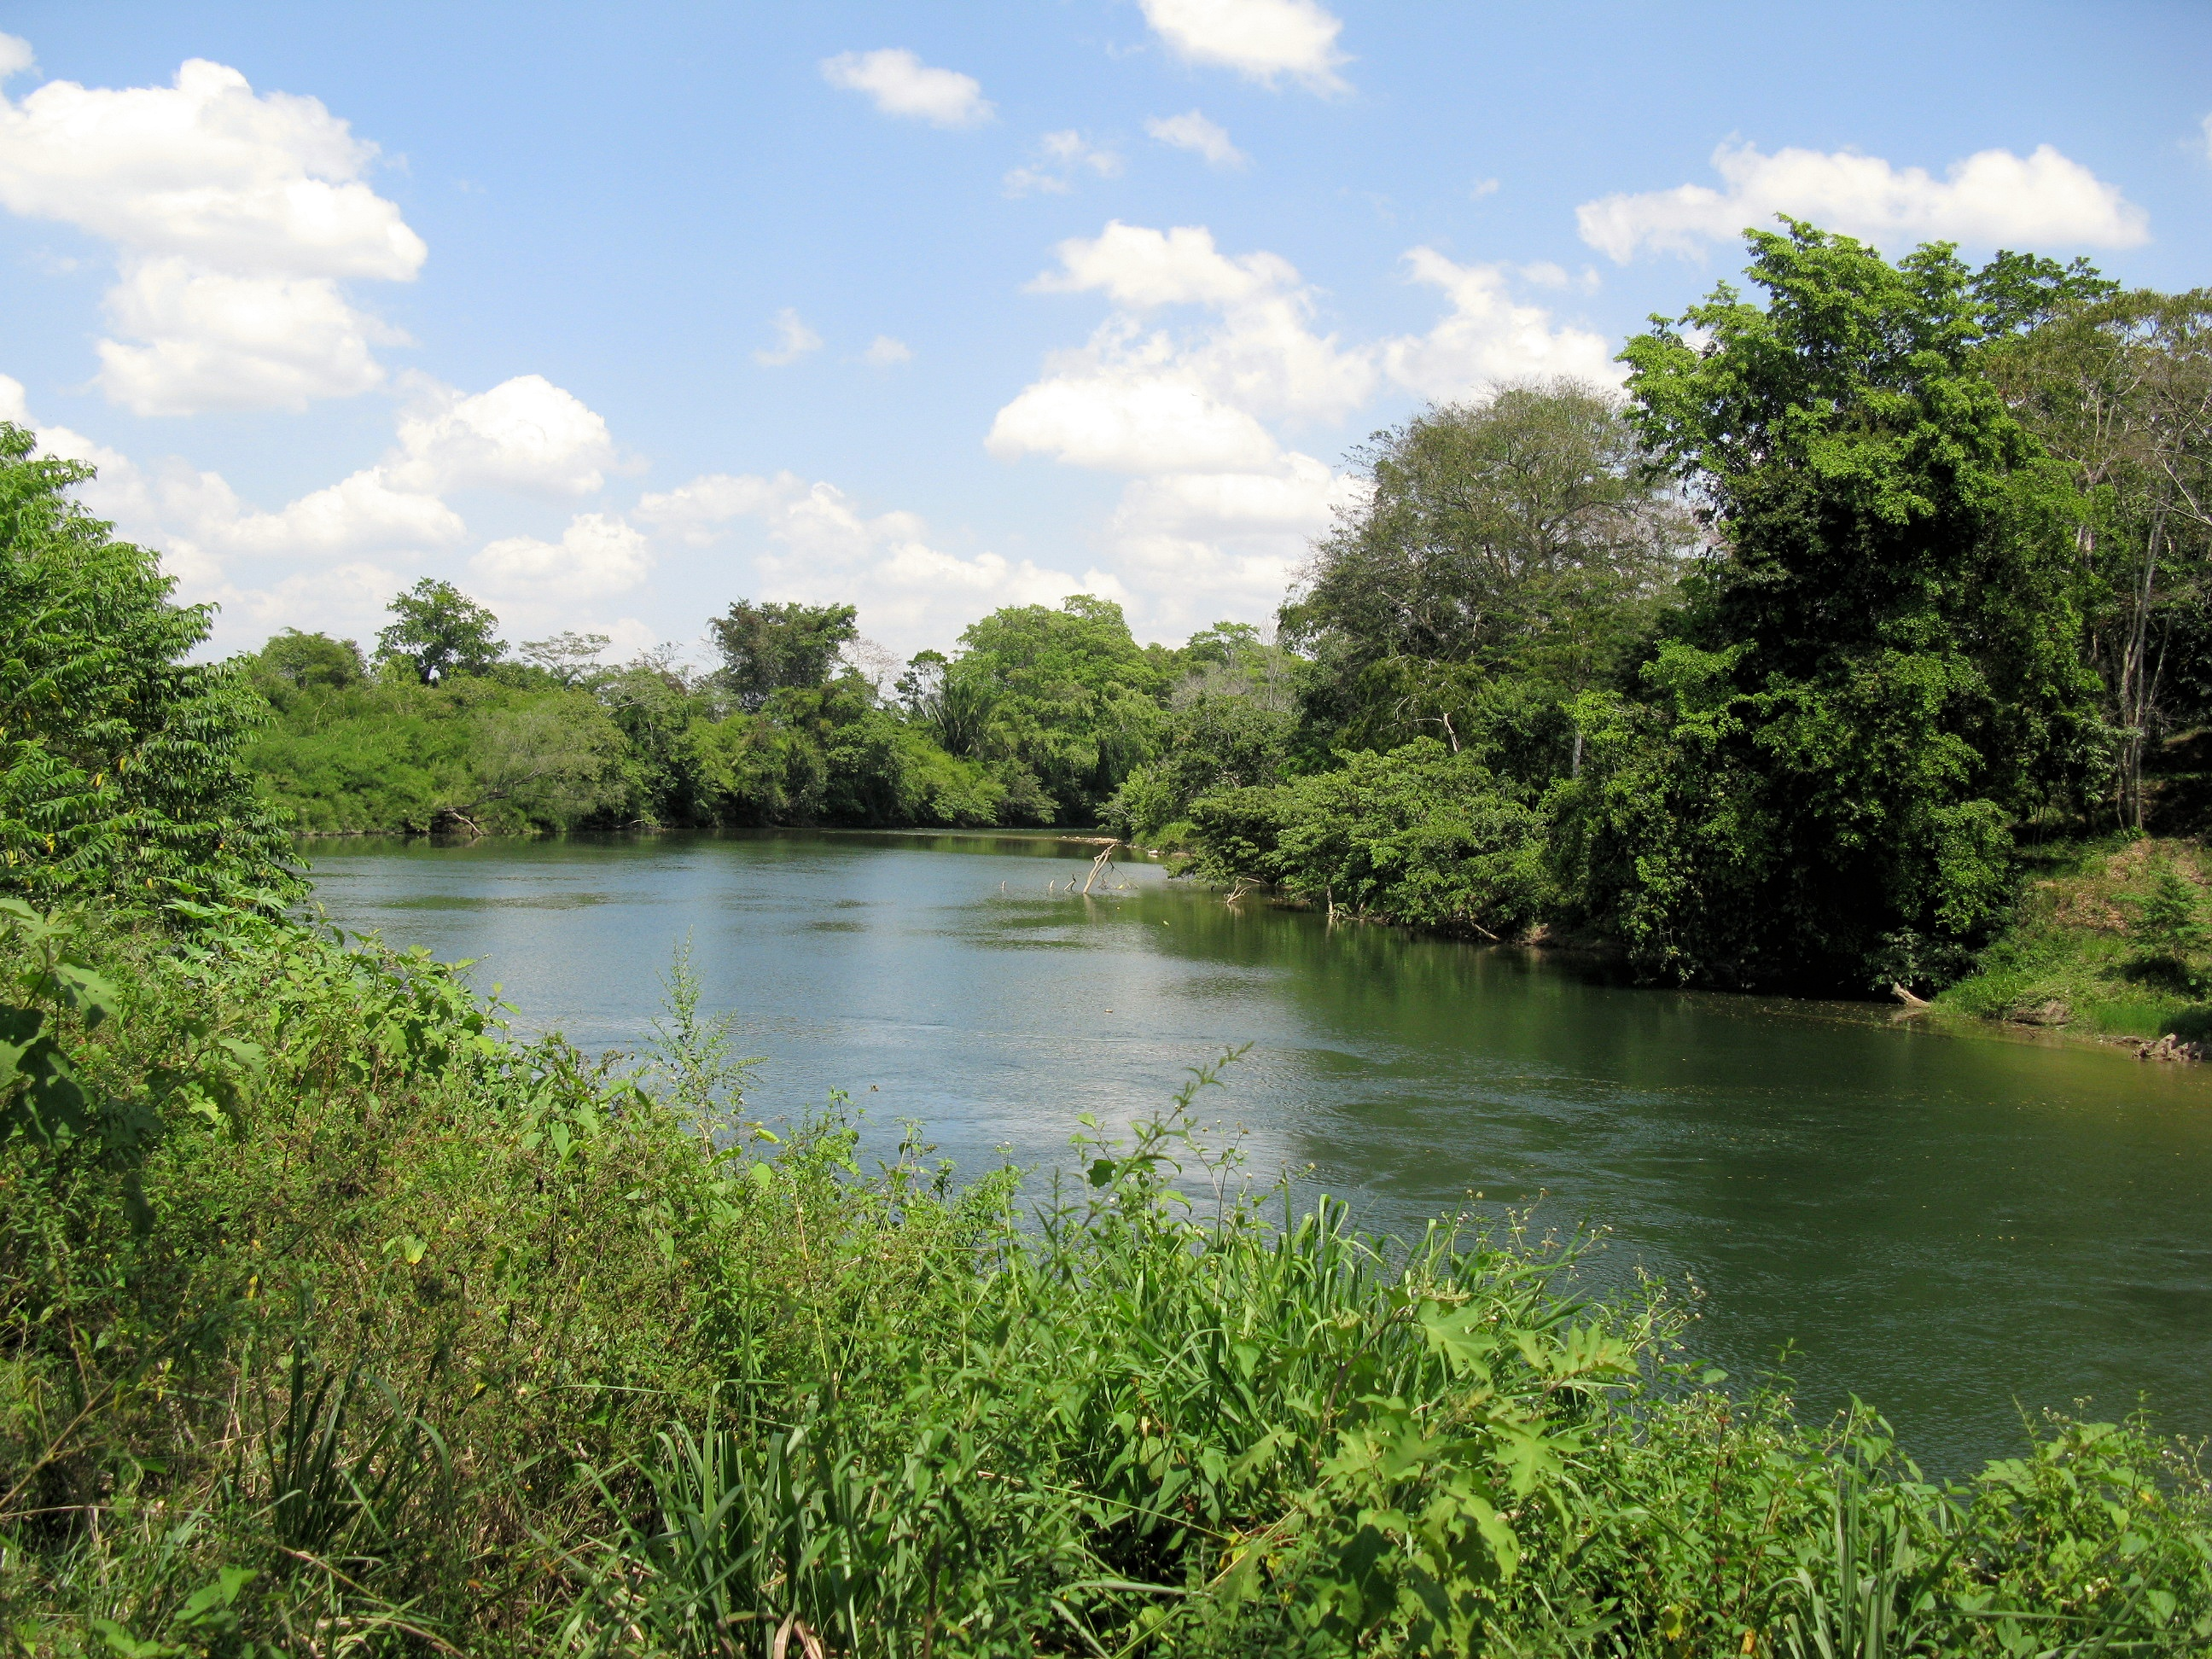 Belize River as it passes the Carmelita Gardens  project on its way to Belize City